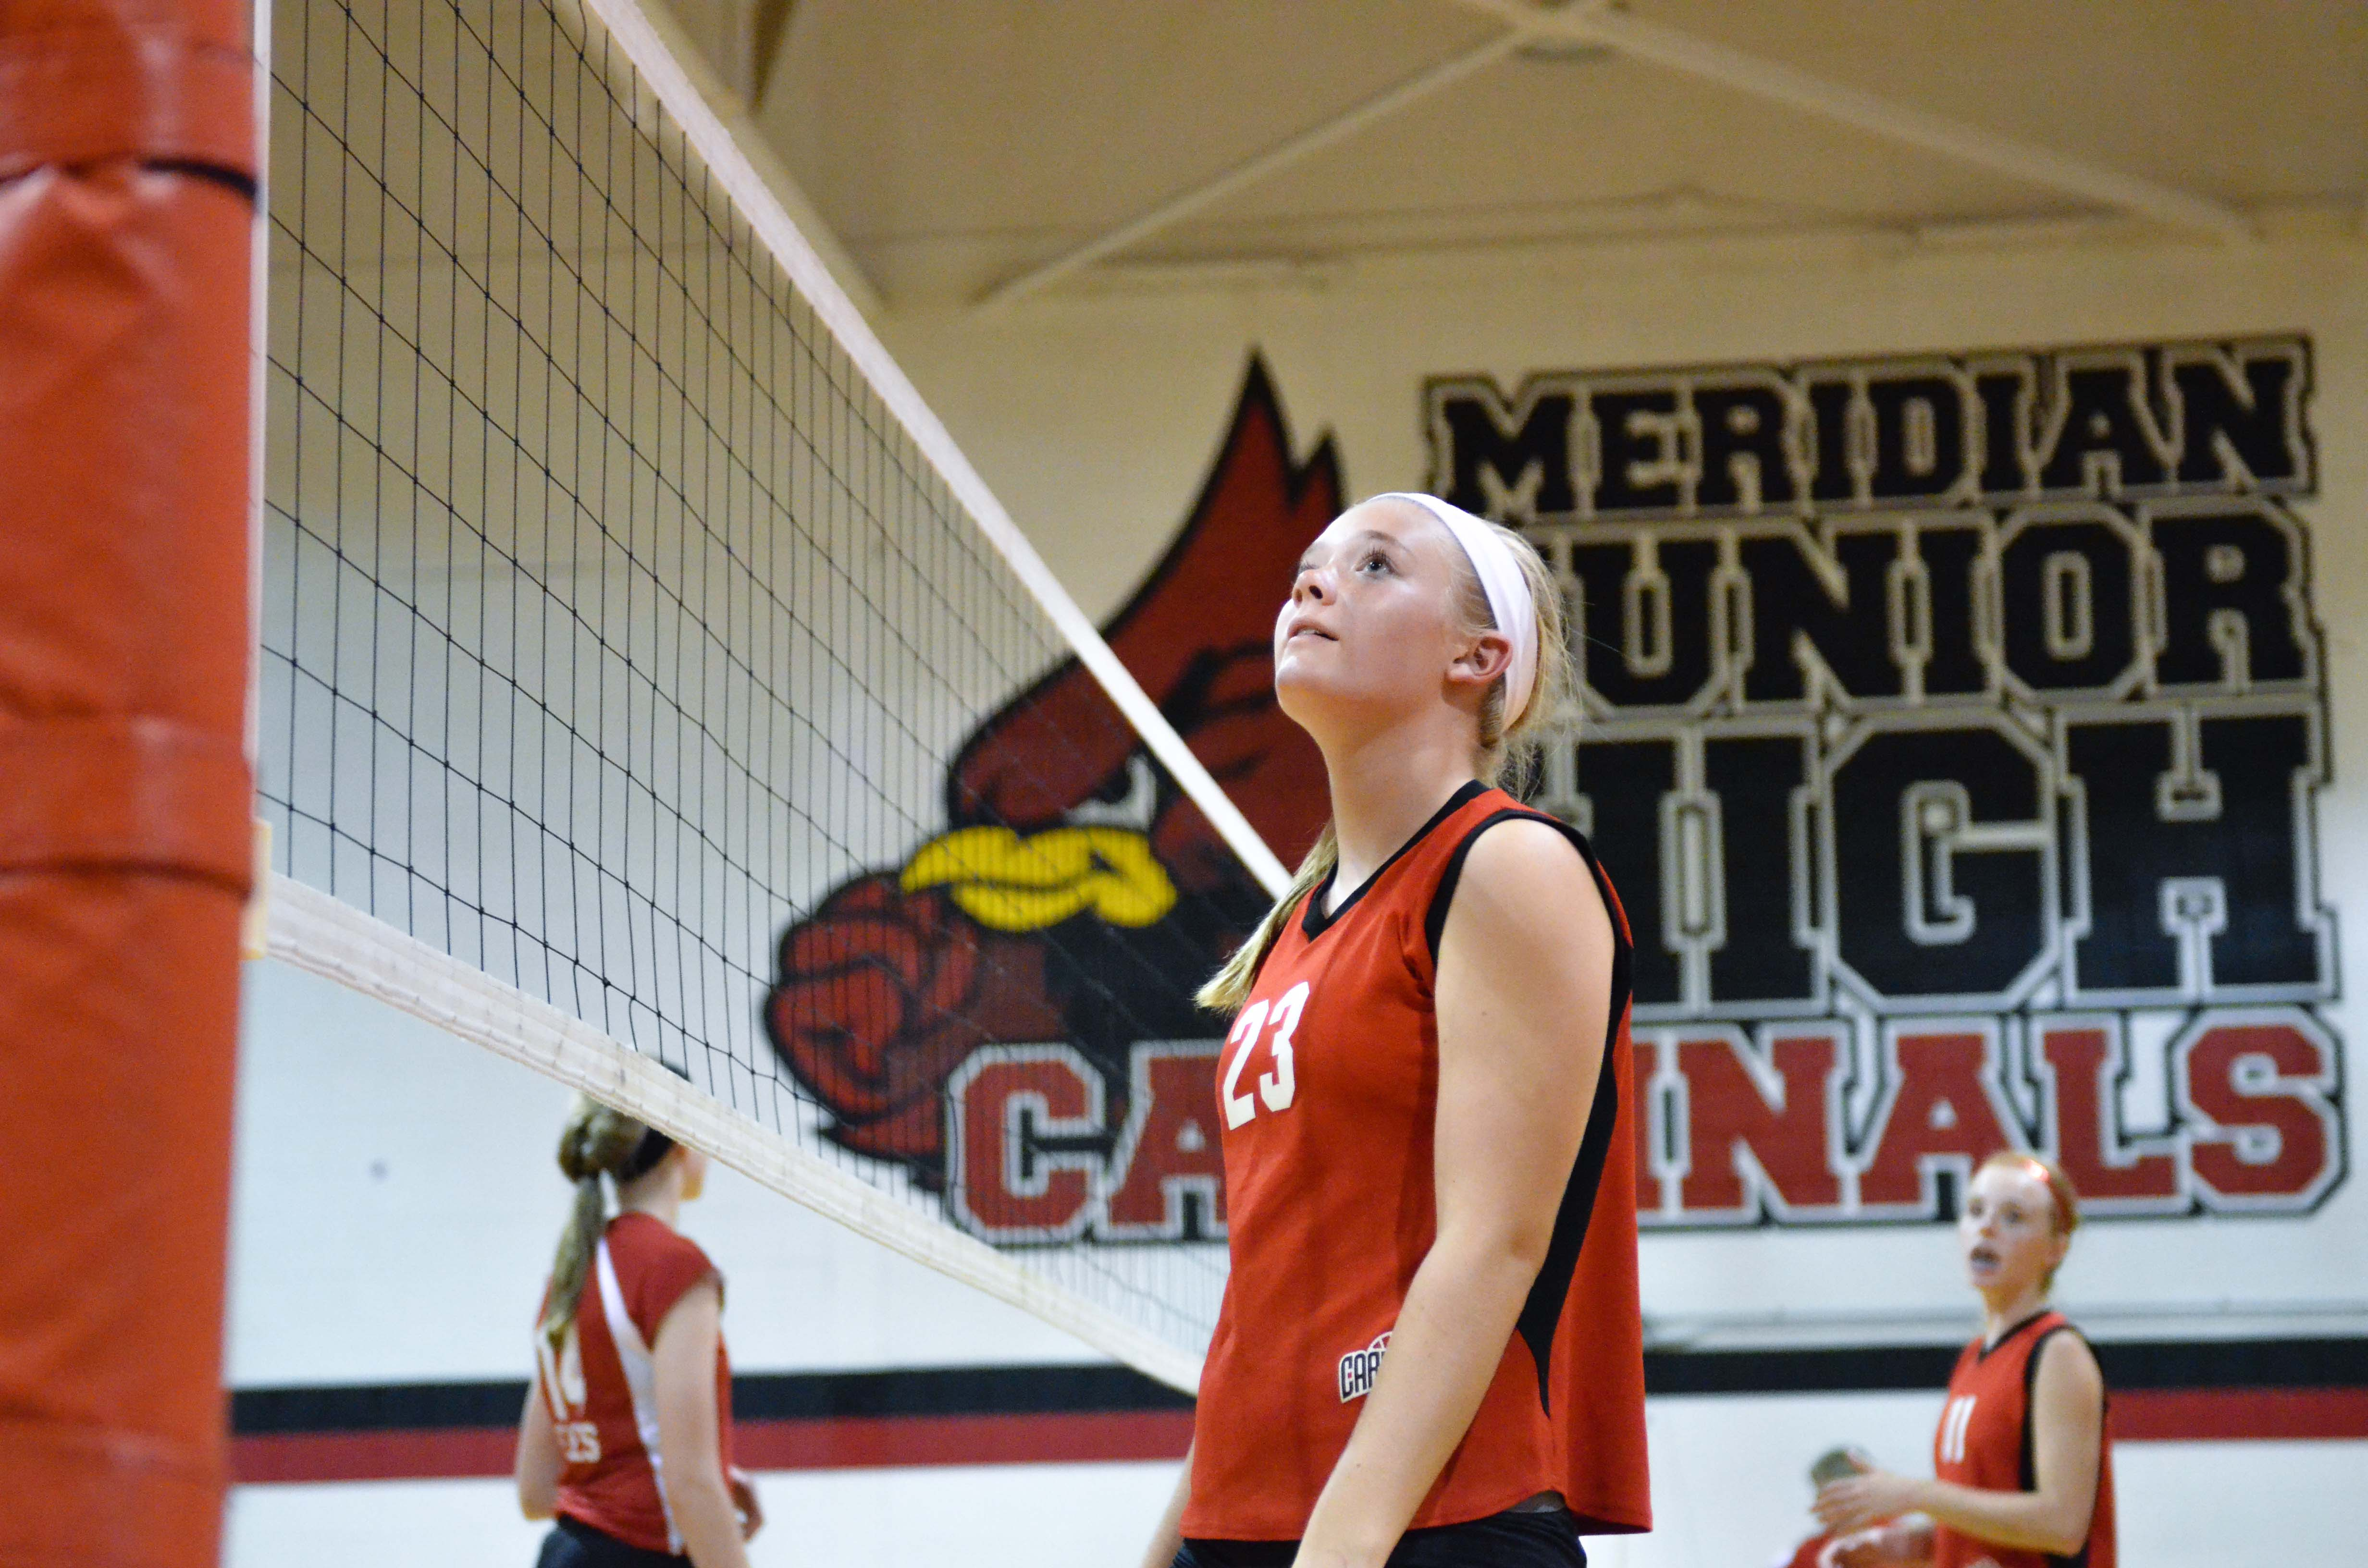 A 7th Grader looks for the right call in volleyball